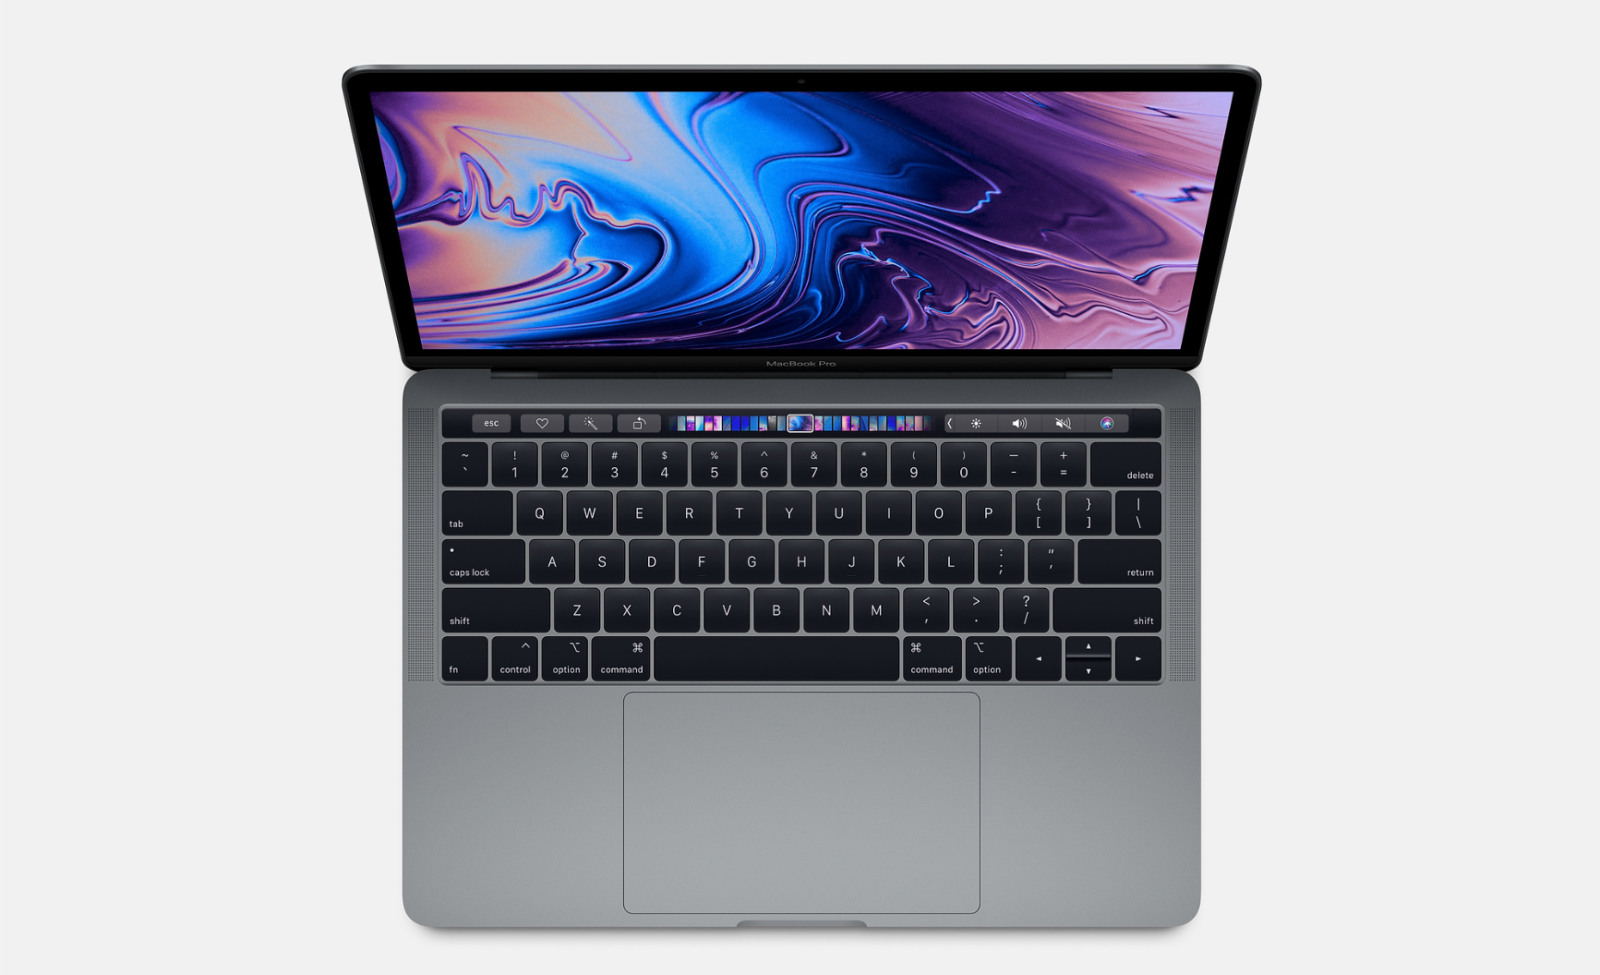 Youtube video not working on macbook pro